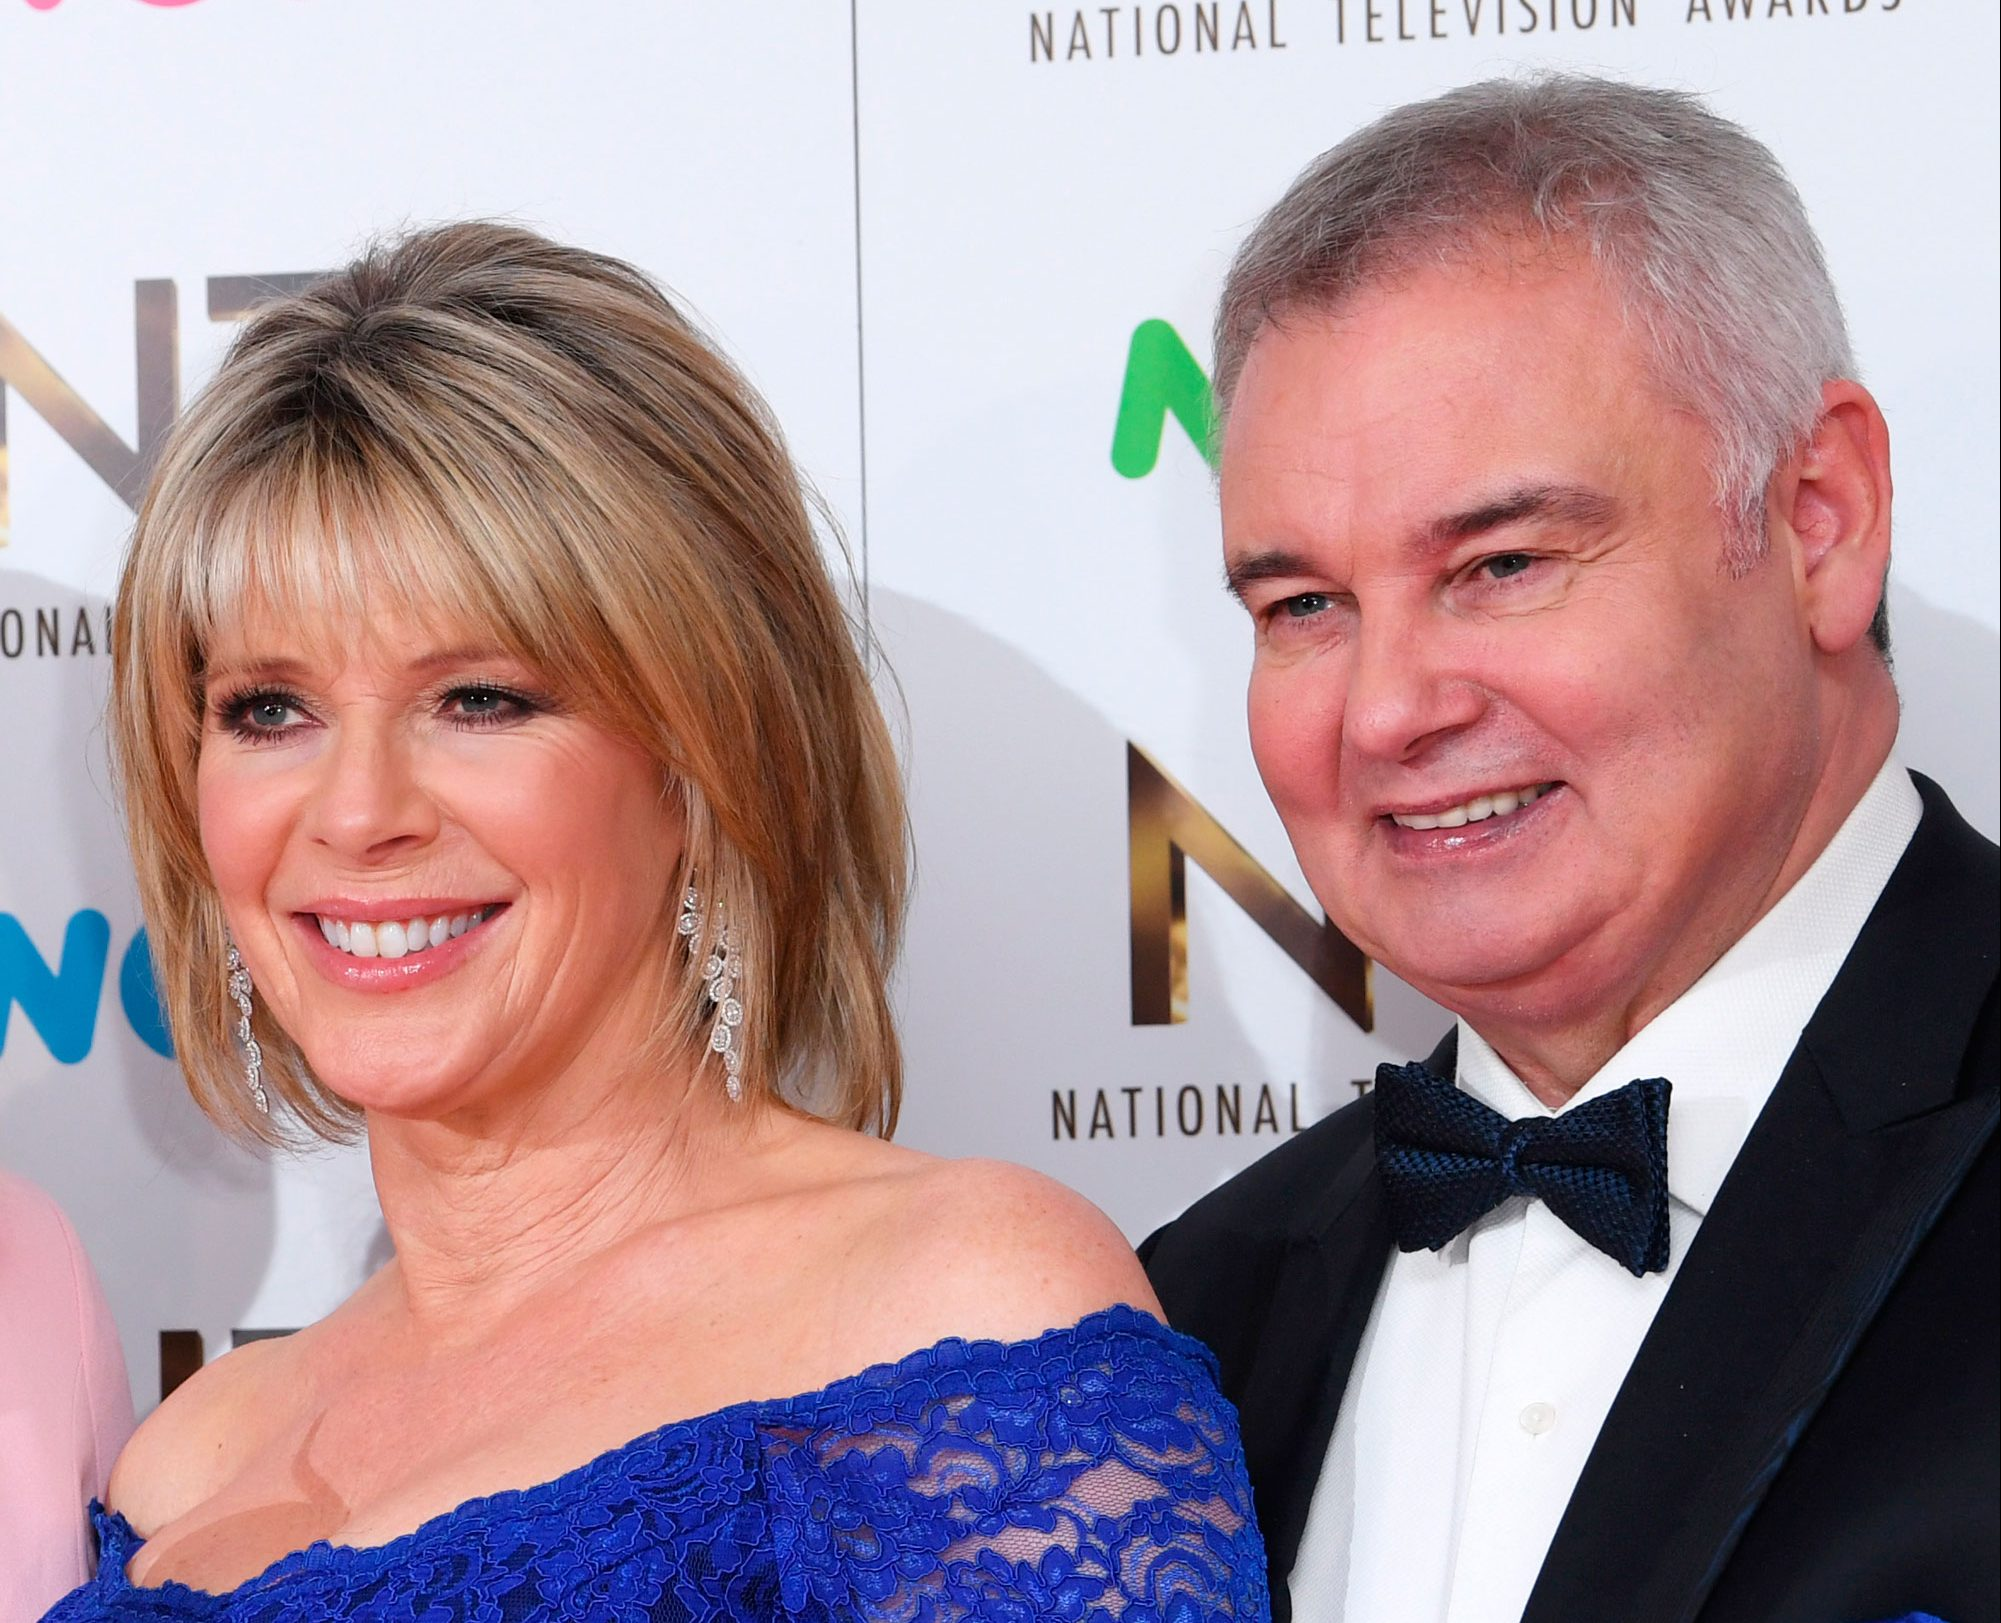 Ruth and Eamonn's new show, Do The Right Thing, proved a huge hit with viewers picture